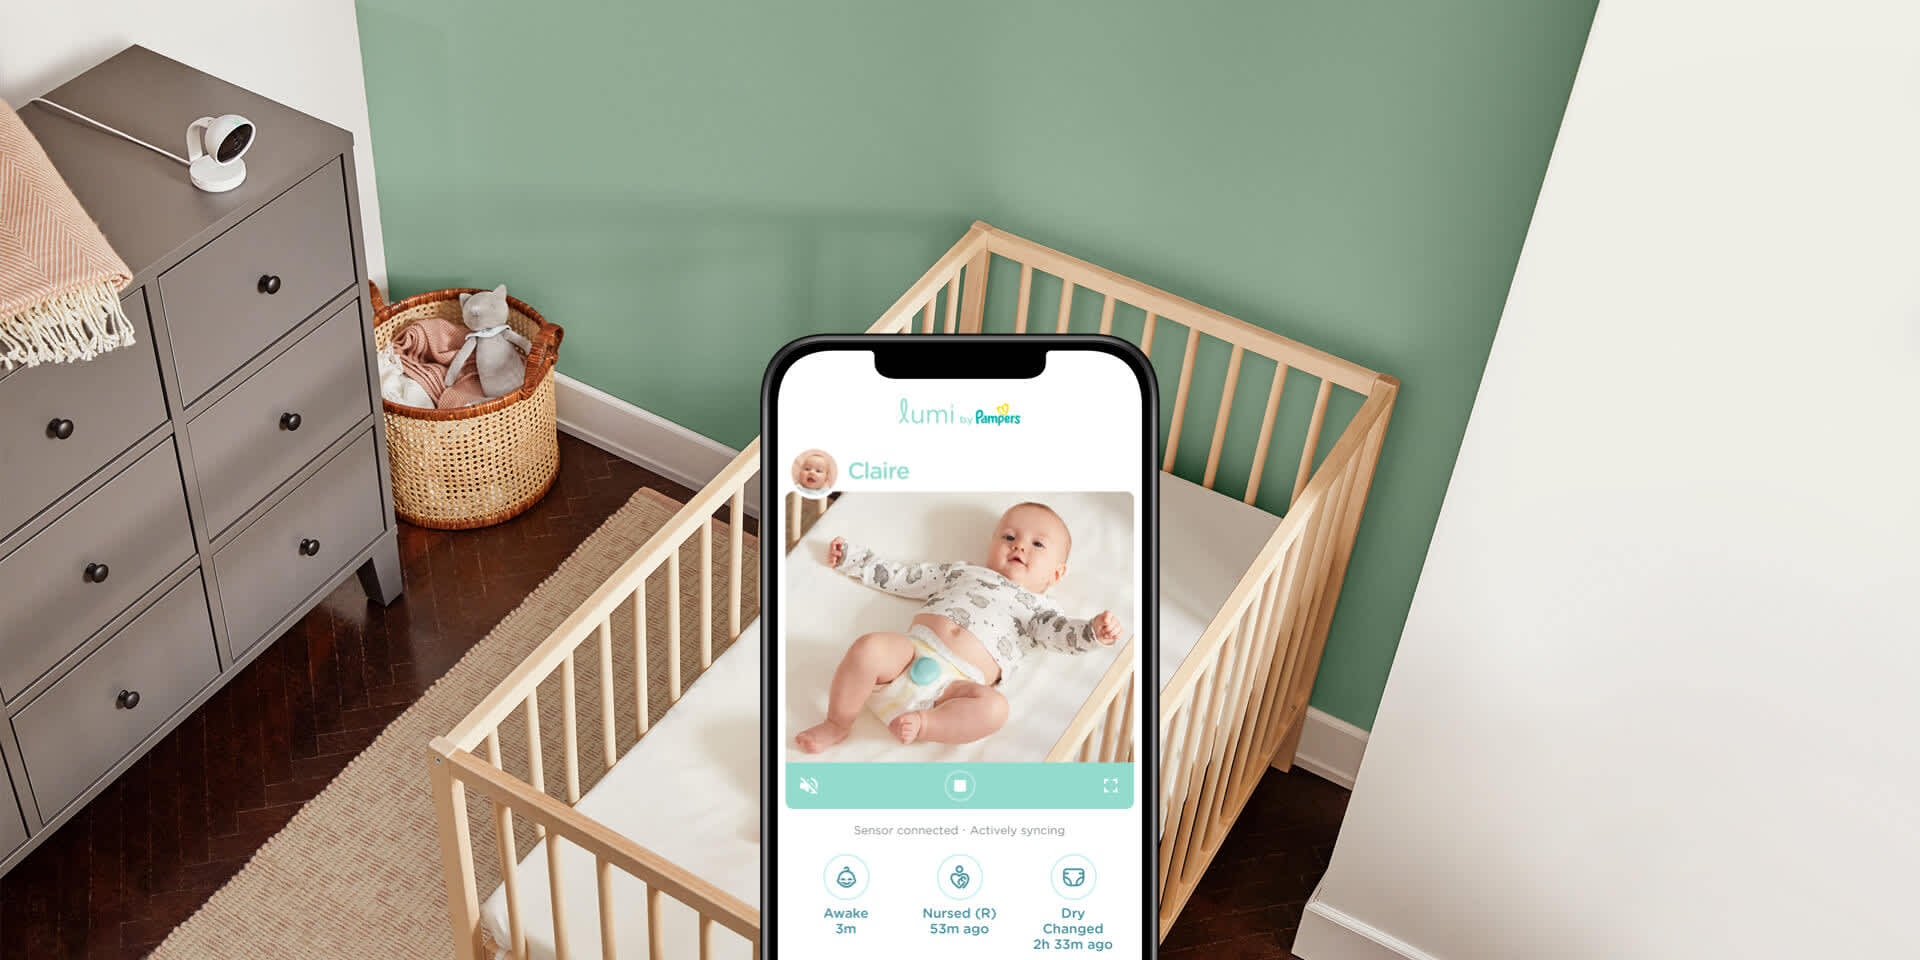 Introducing the world's first all-in-one Connected Care System